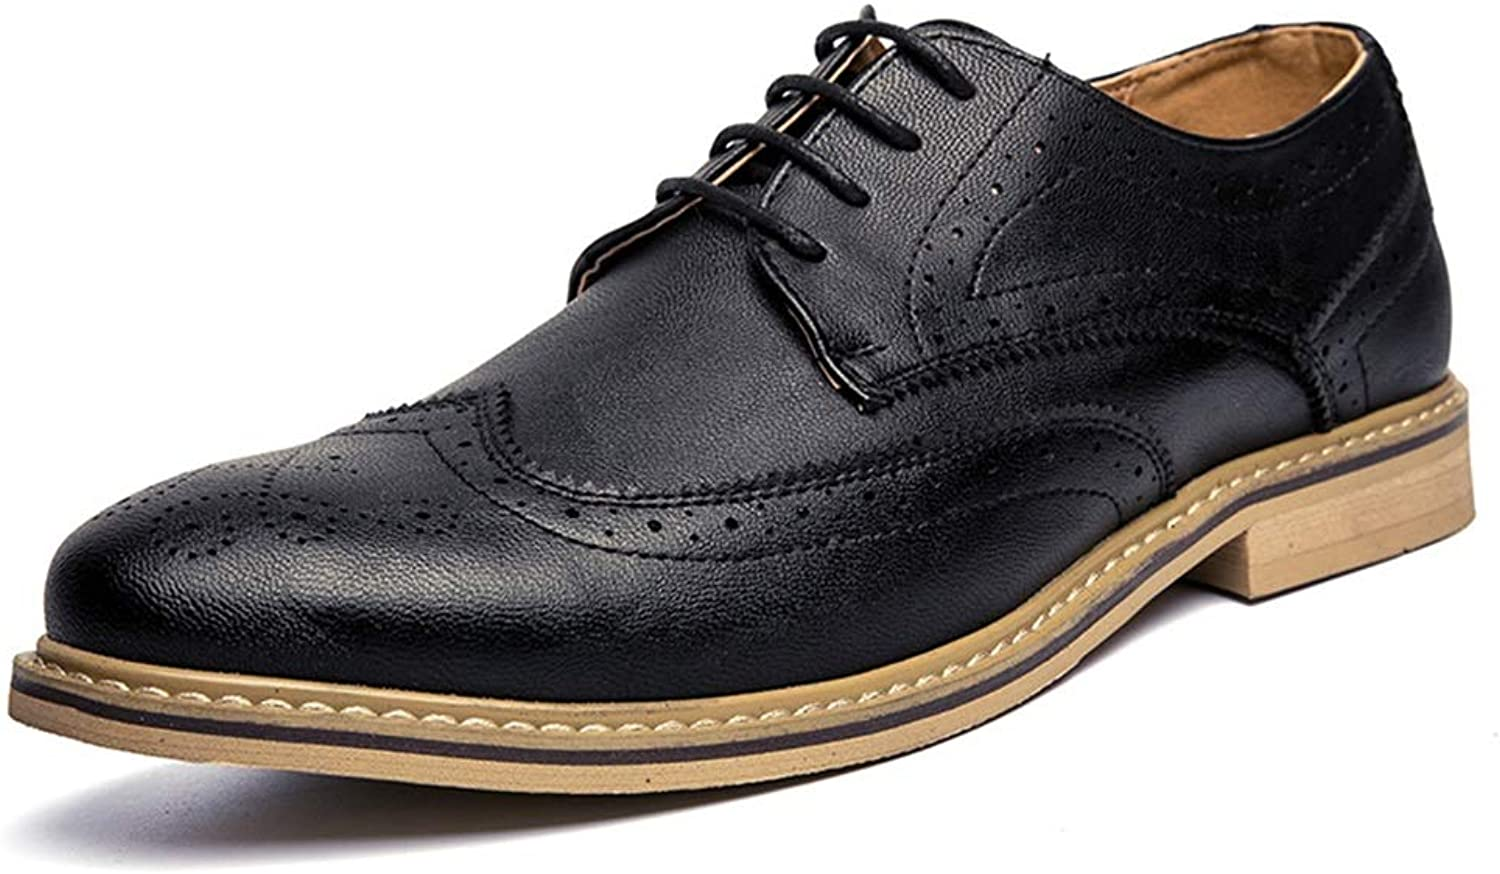 IWGR Men's Fashion Oxford shoes Casual Comfortable Classic Light Classic Carving Brogue Pointed shoes